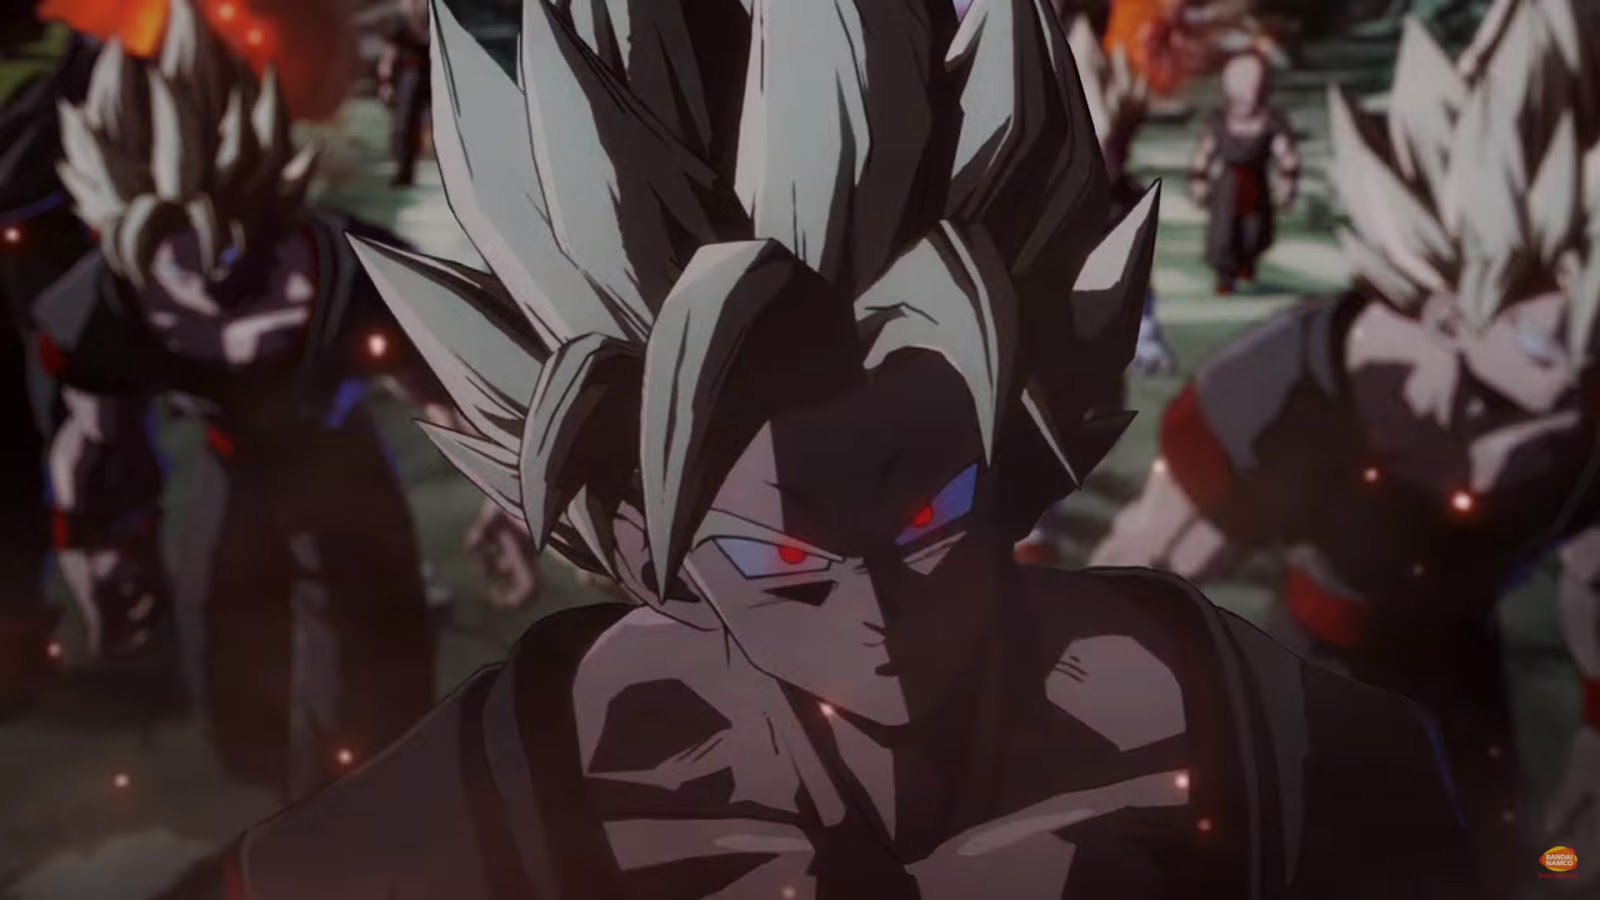 Fight Back Against The Clones So First Things Go Find Other Z Warriors Then Once Assembled Source Of Waves And Put A Stop